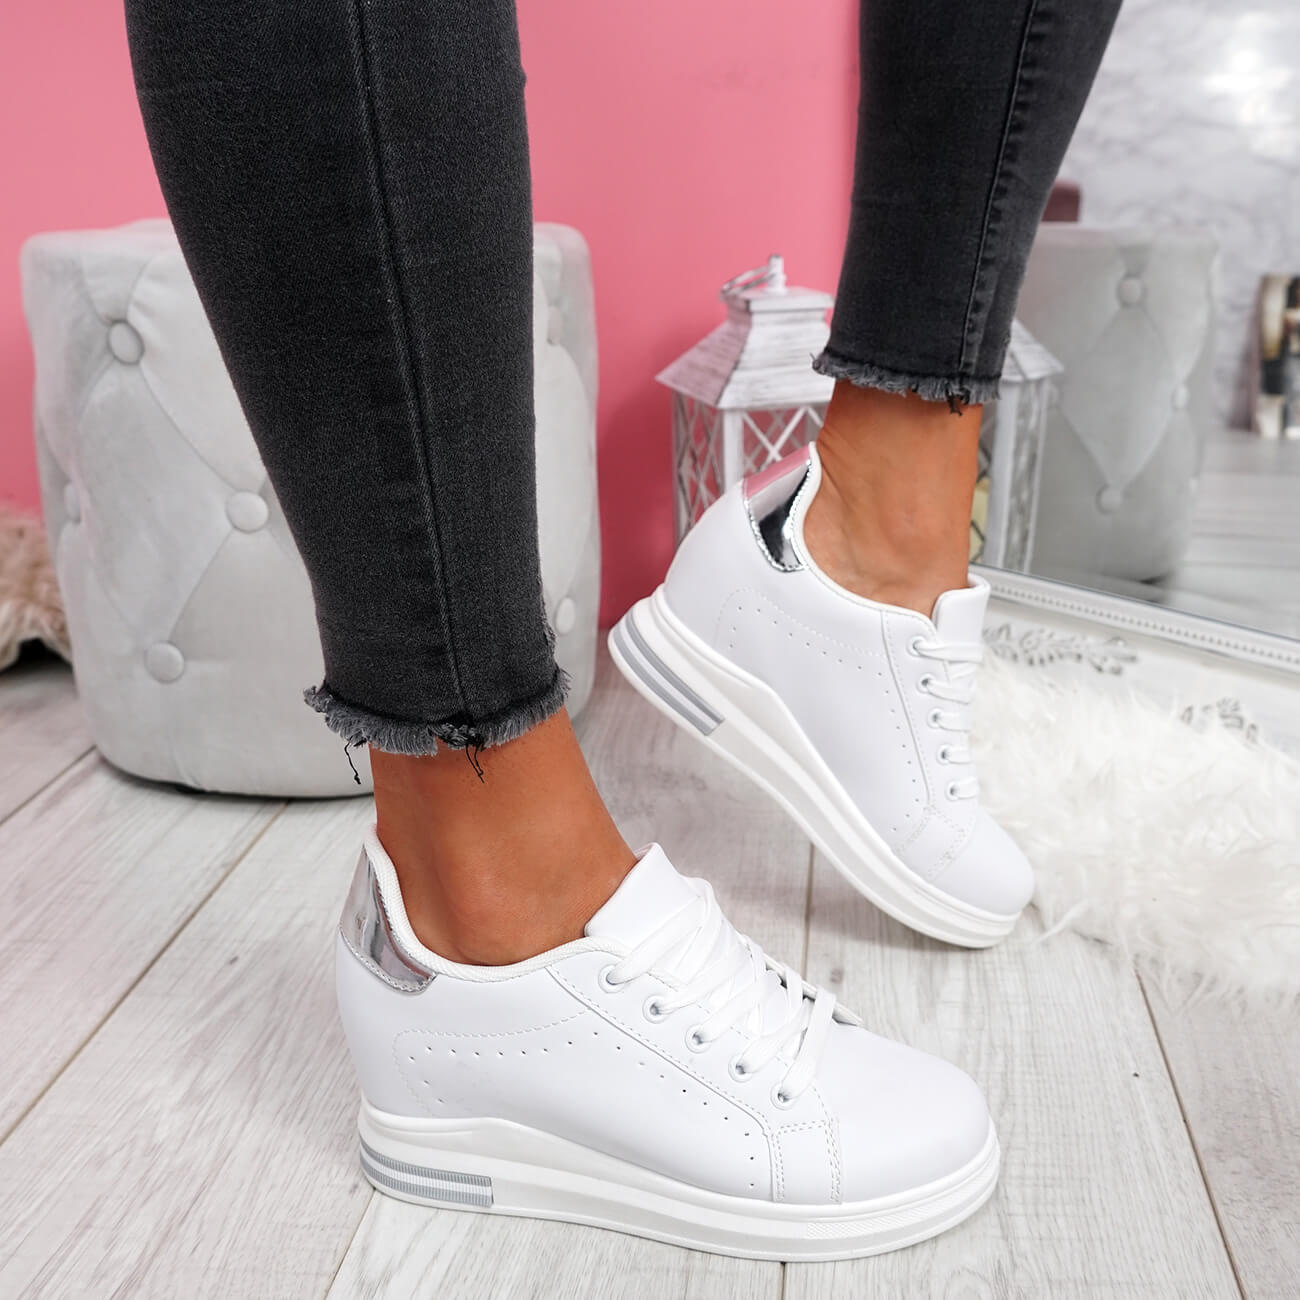 WOMENS-LADIES-LACE-UP-WEDGE-TRAINERS-HEEL-SNEAKERS-SHINY-PARTY-WOMEN-SHOES thumbnail 16